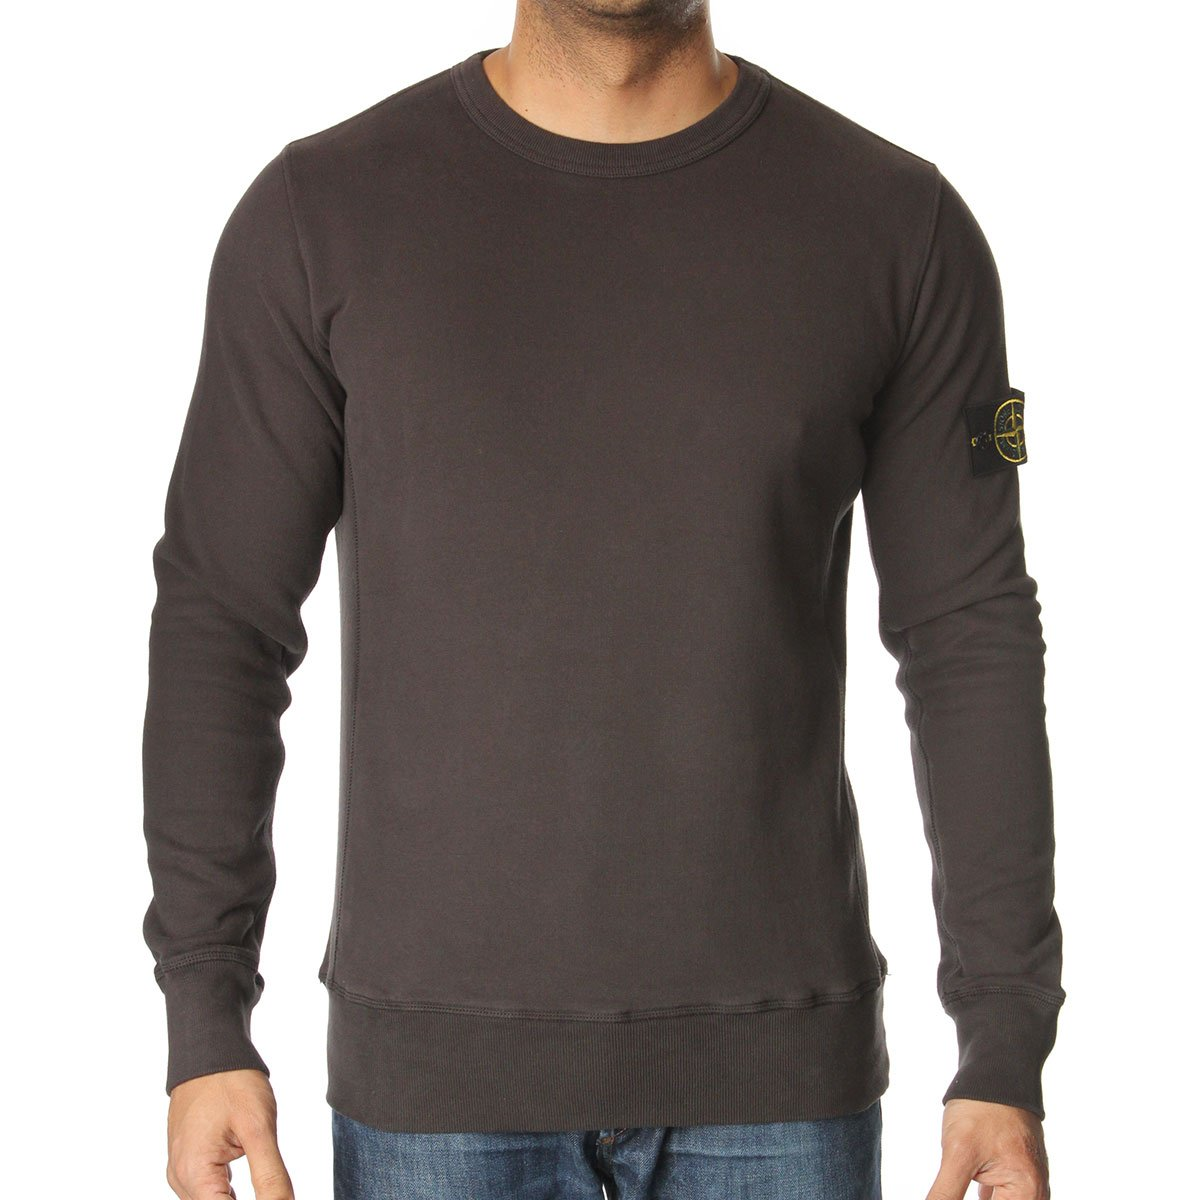 stone island 65320 sweater stone island from the menswear site uk. Black Bedroom Furniture Sets. Home Design Ideas